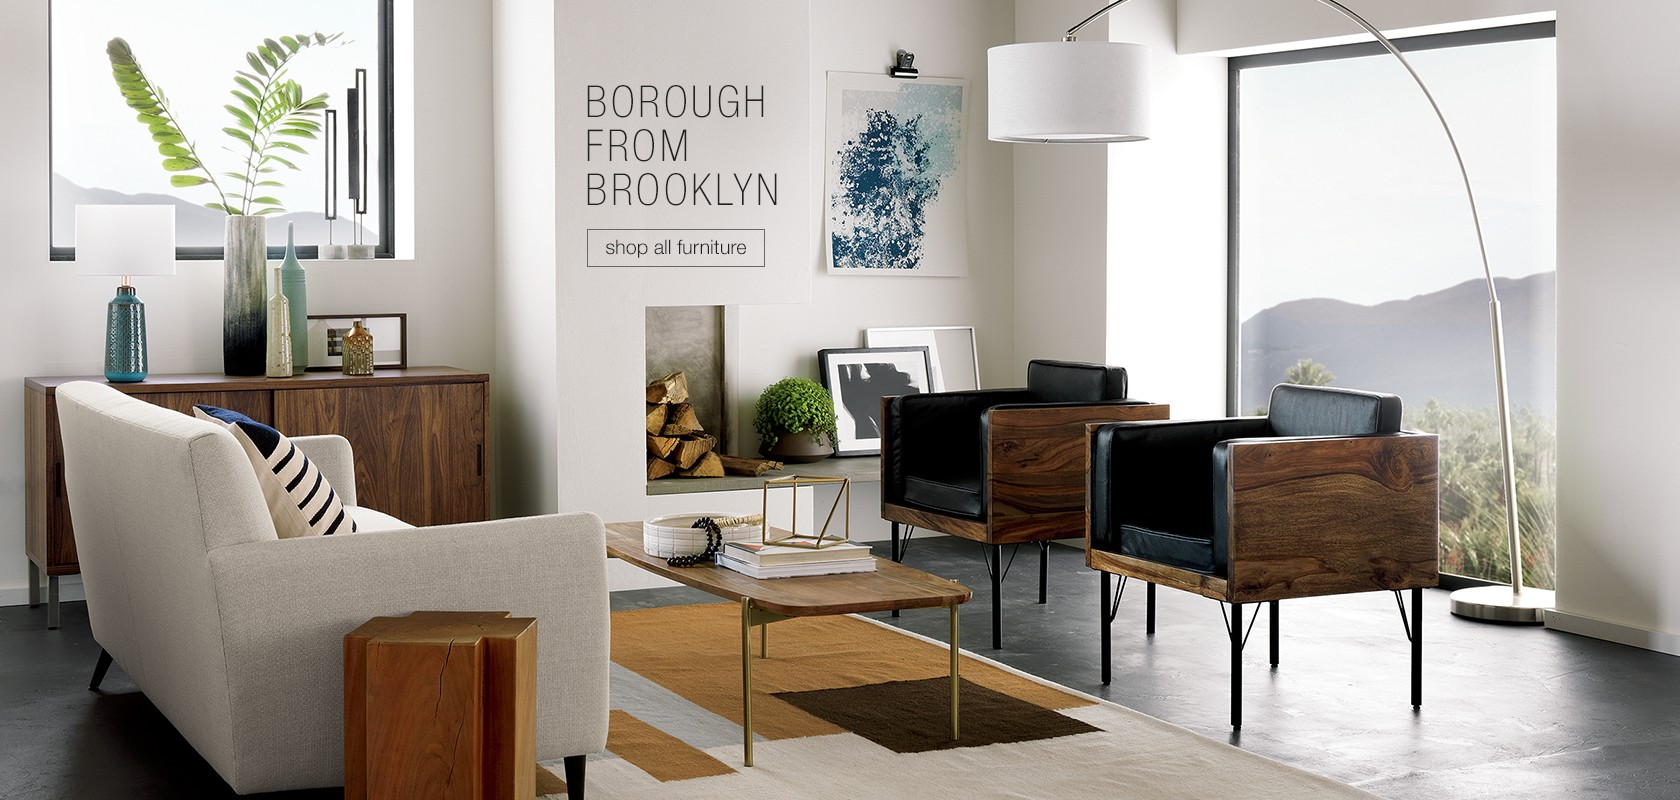 Borough from Brooklyn. shop all furniture